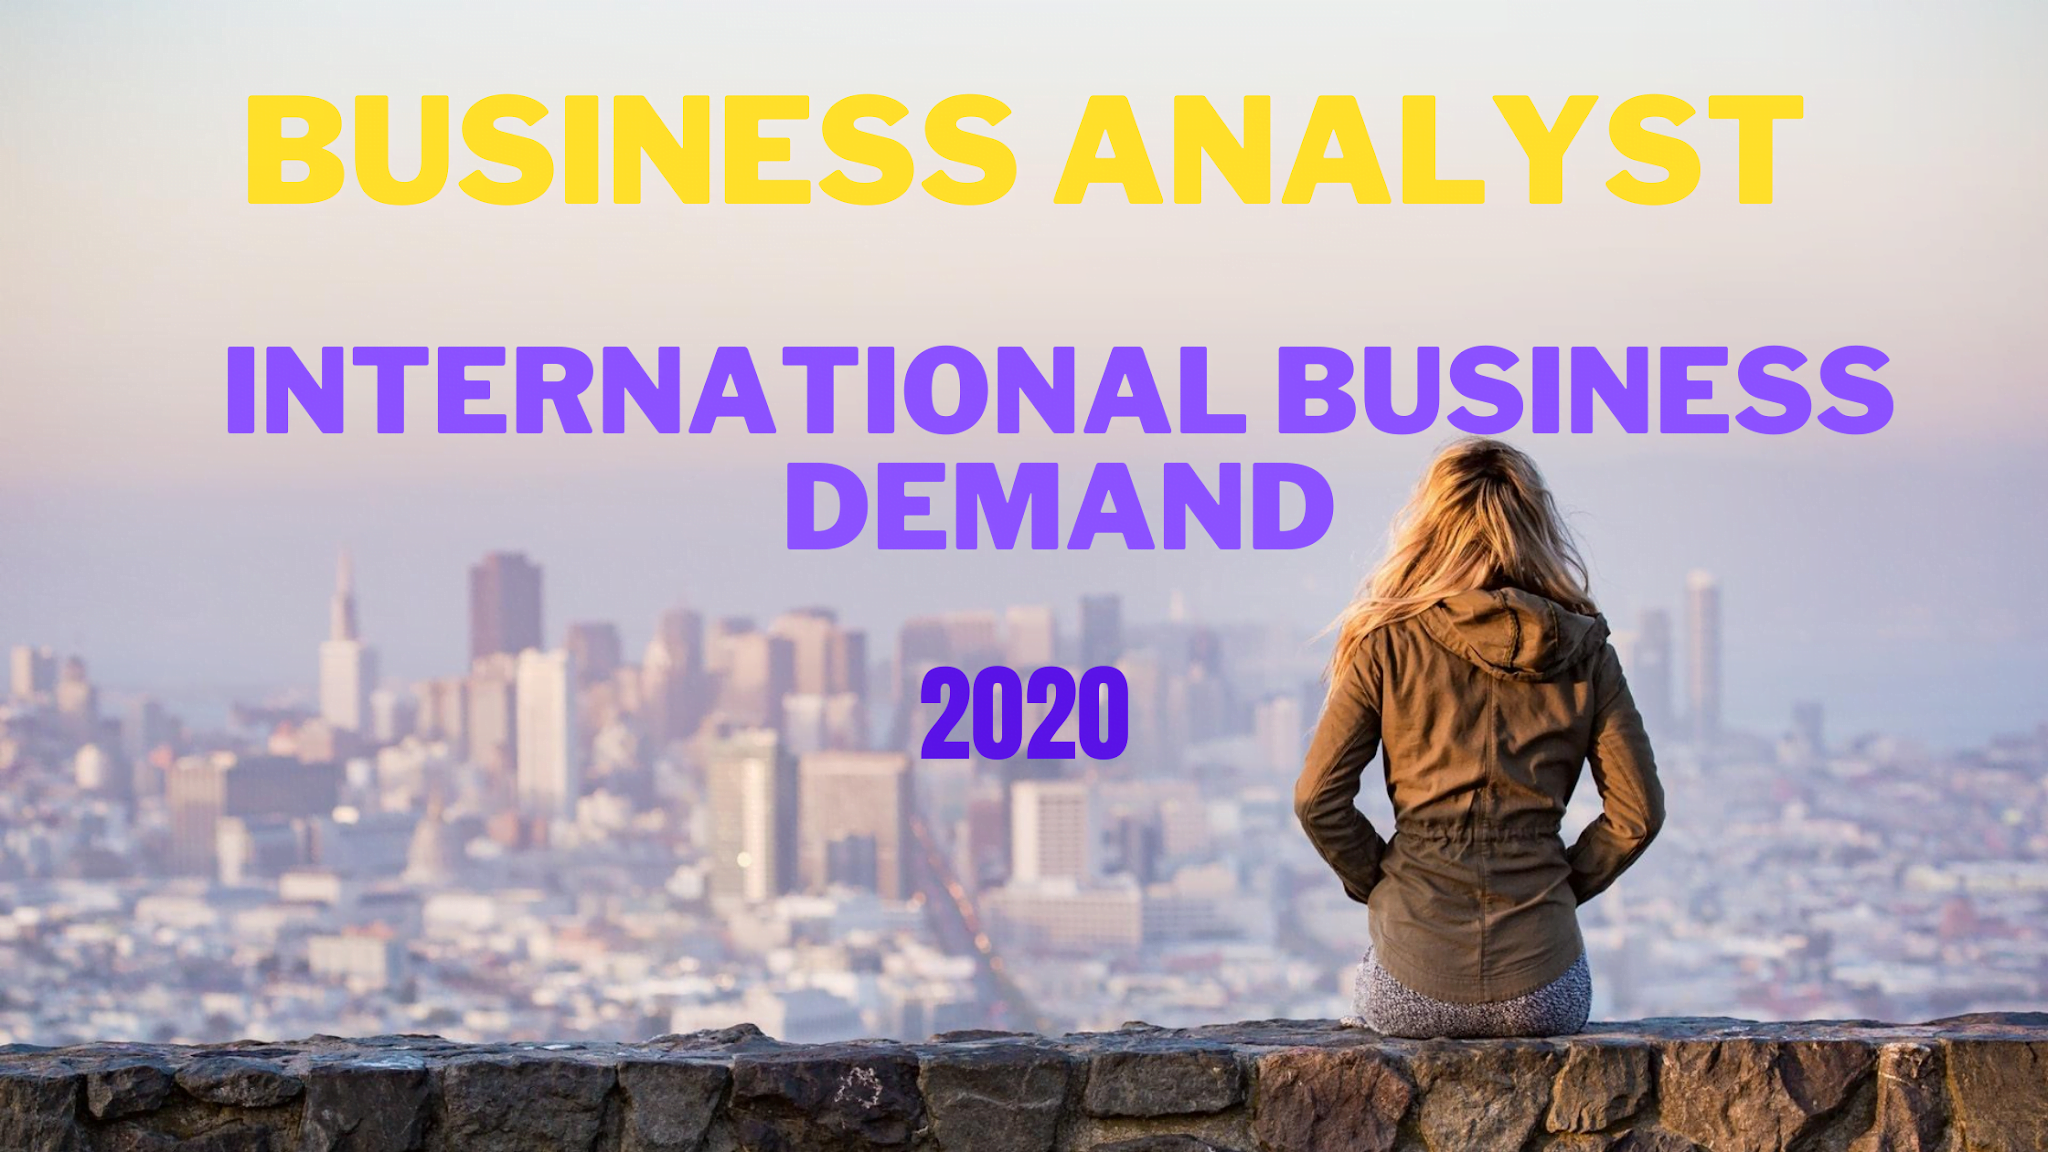 International business analyst and business demand 2020